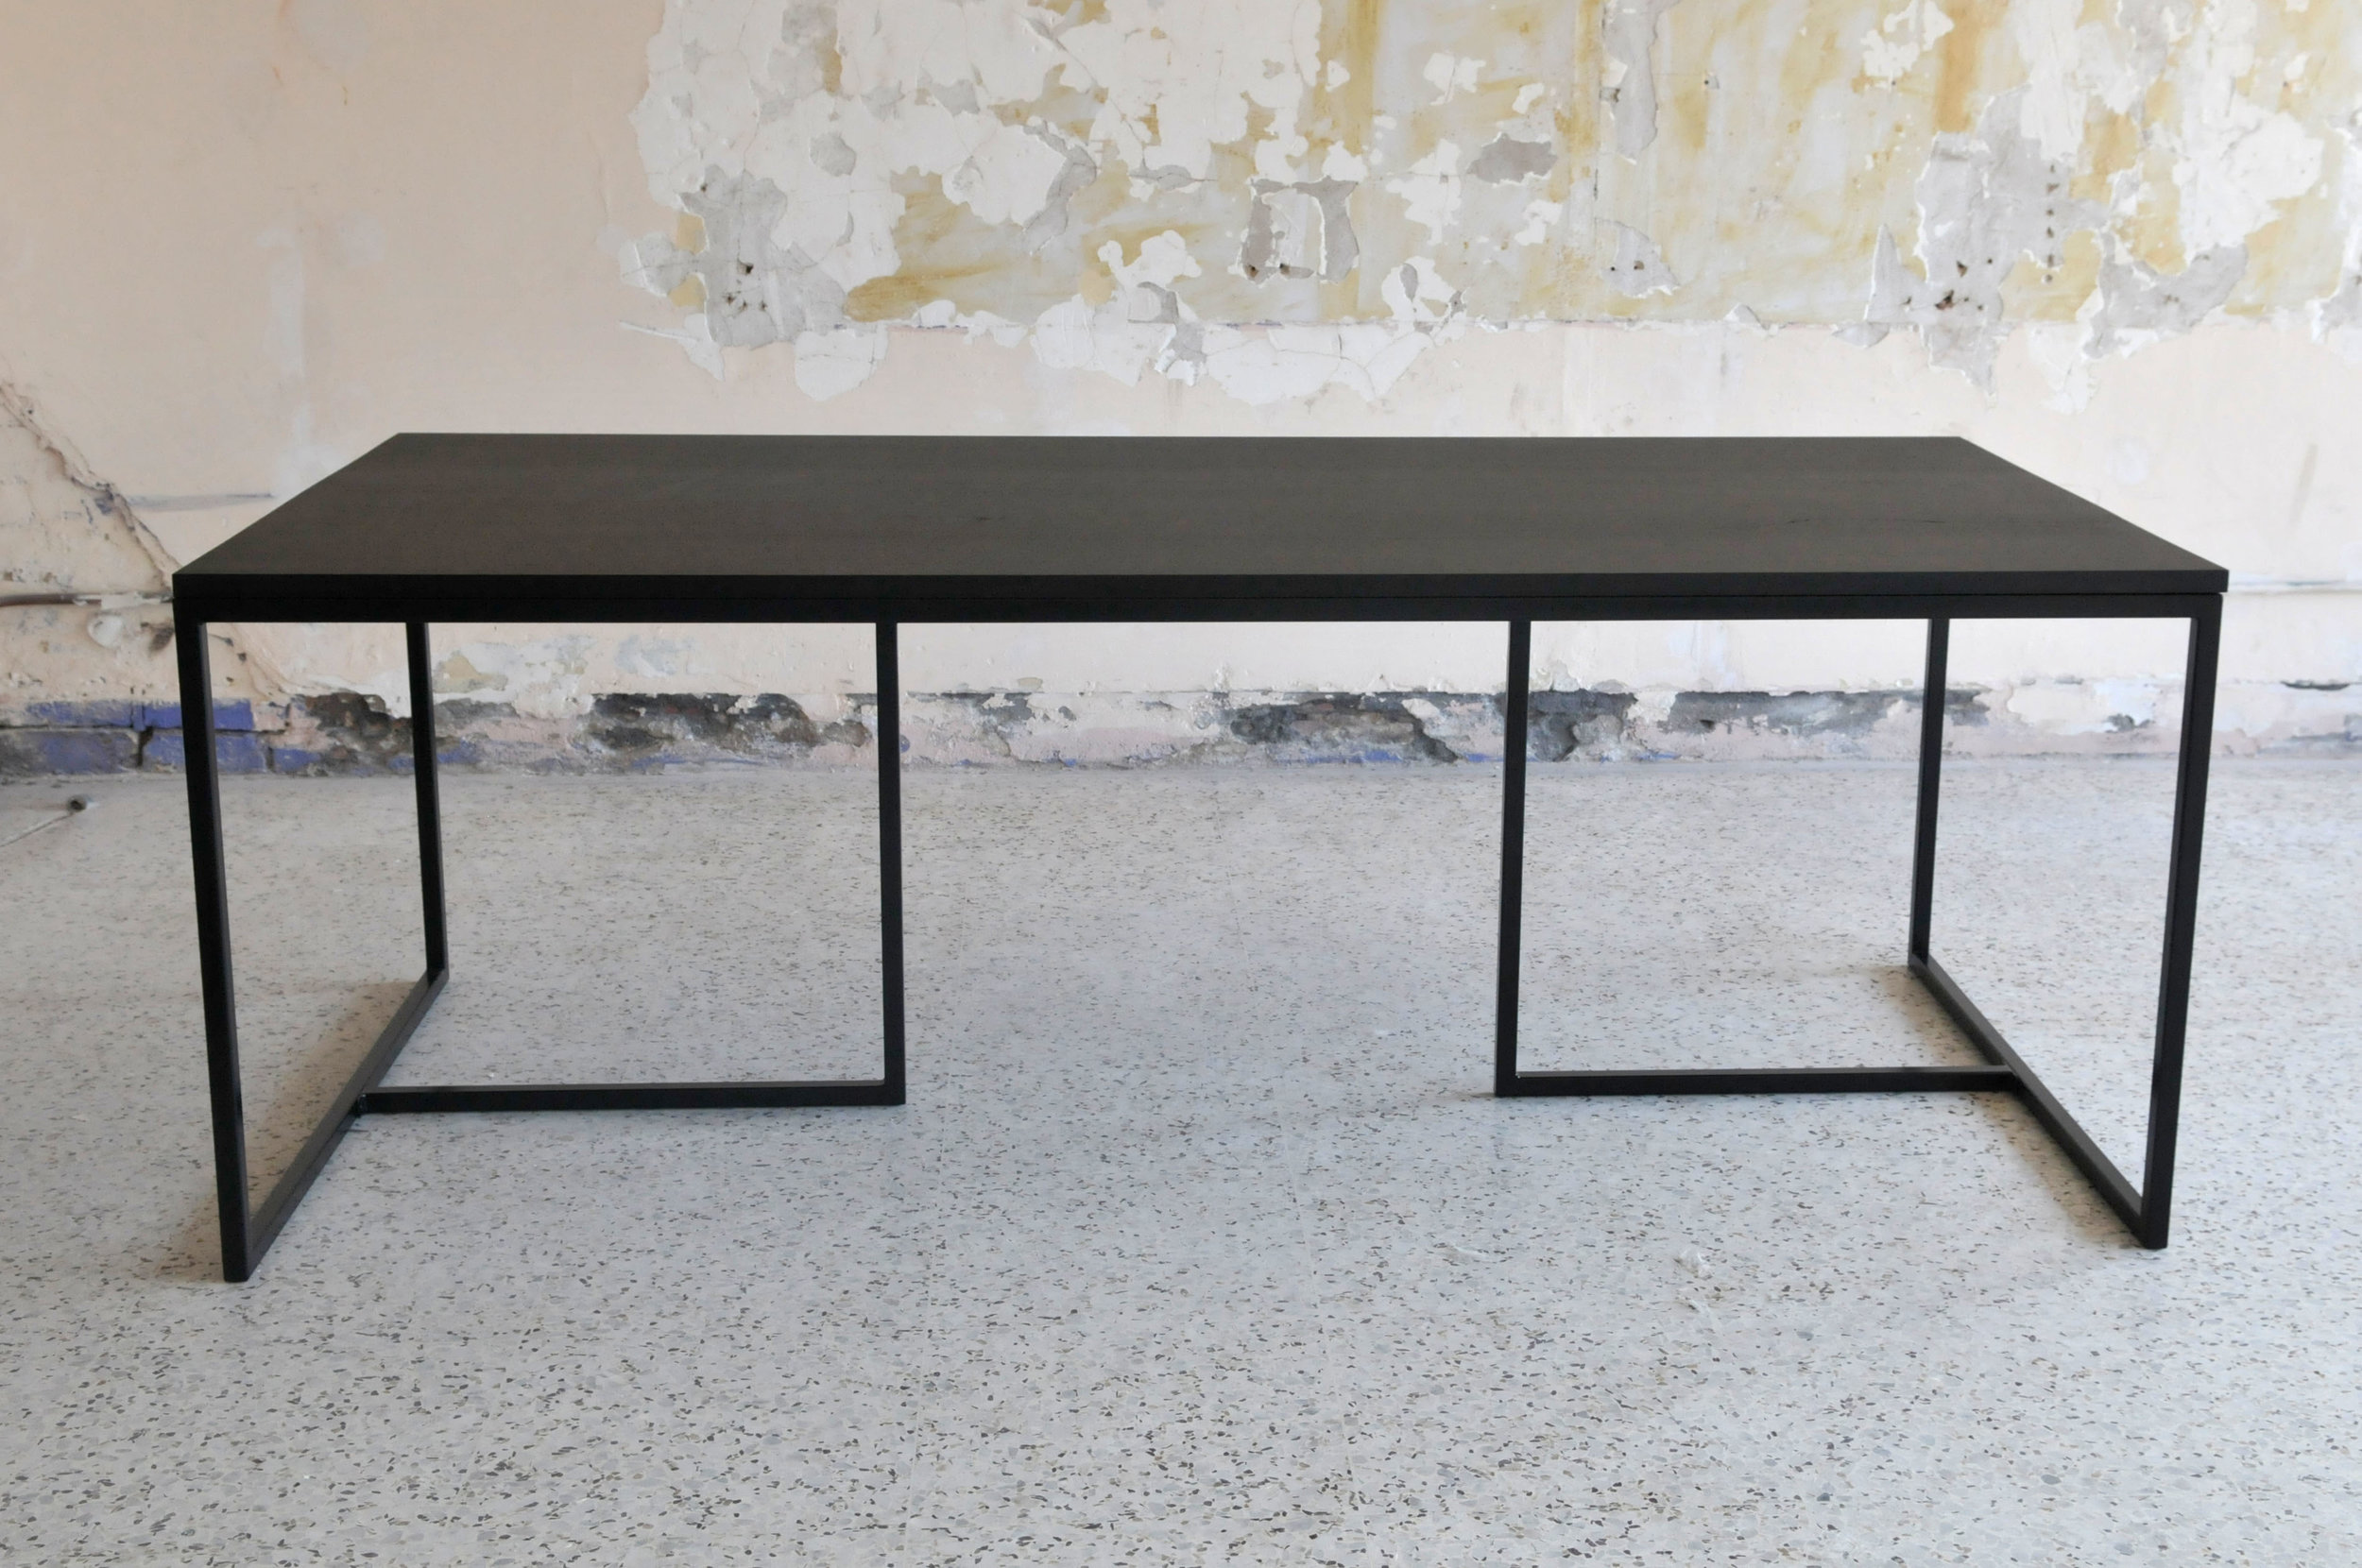 Kupa 6-8 Seter Dinning table $2,500.00   The minimalist aesthetic of this collection champions clean lines and stylish functionality.  All pieces are Victorian Ash stained matte black, on top of powder-coated black steel frames.